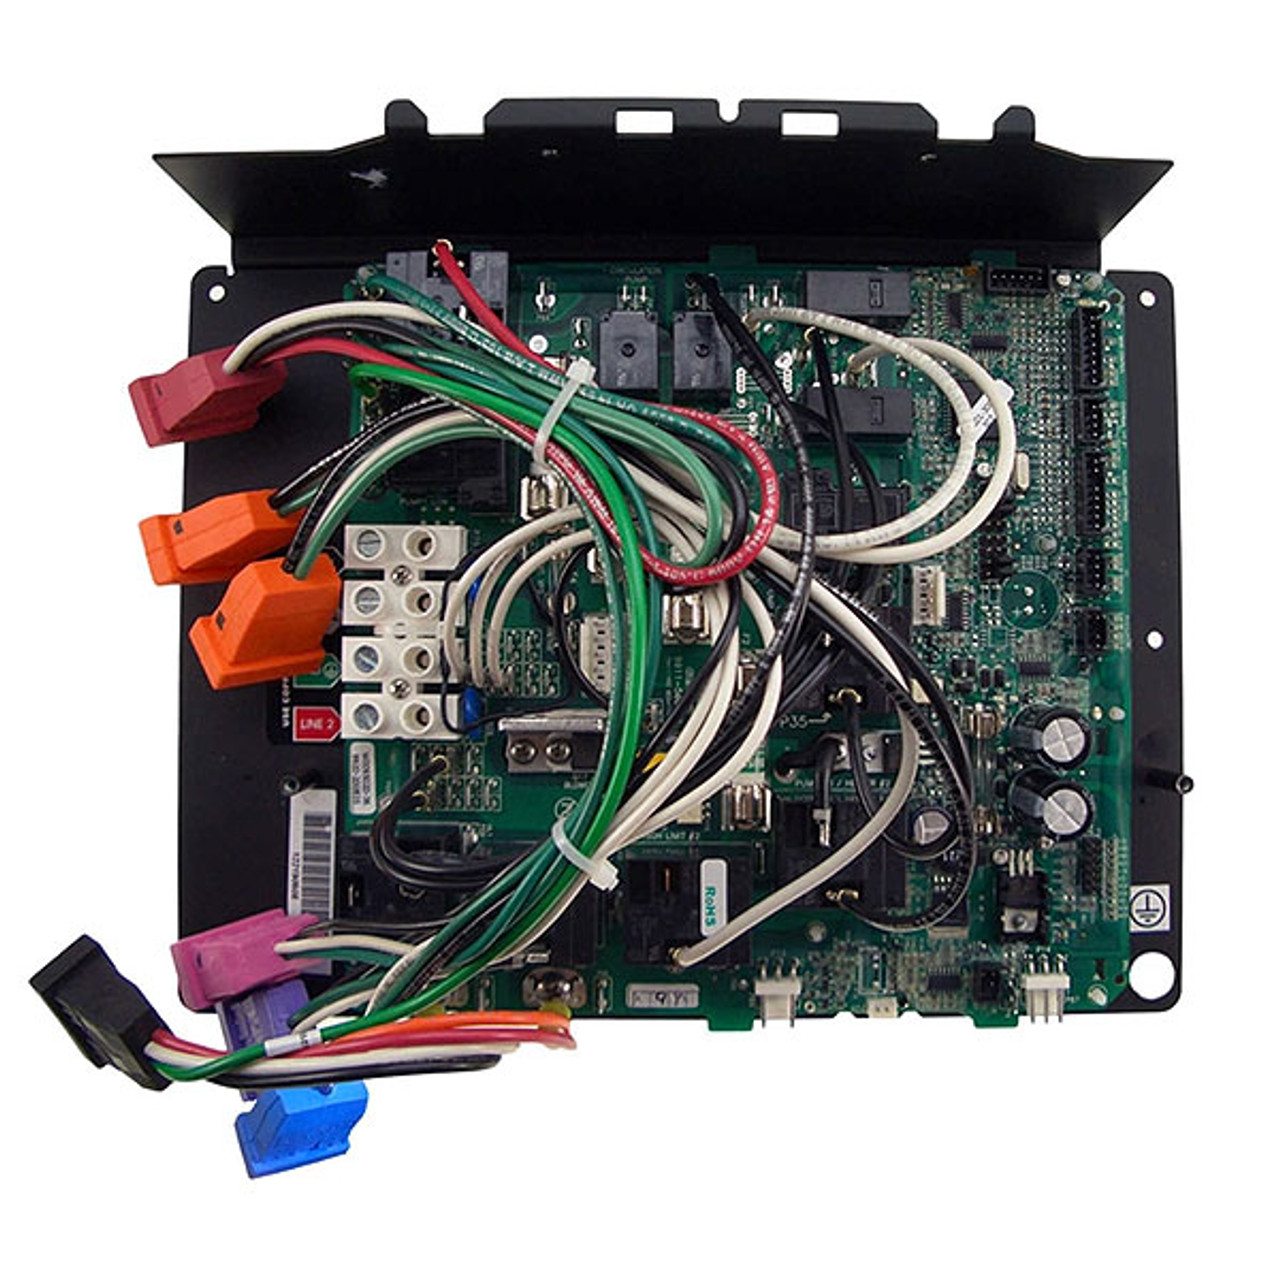 0201 300031 gecko board replacement kit for arctic spas